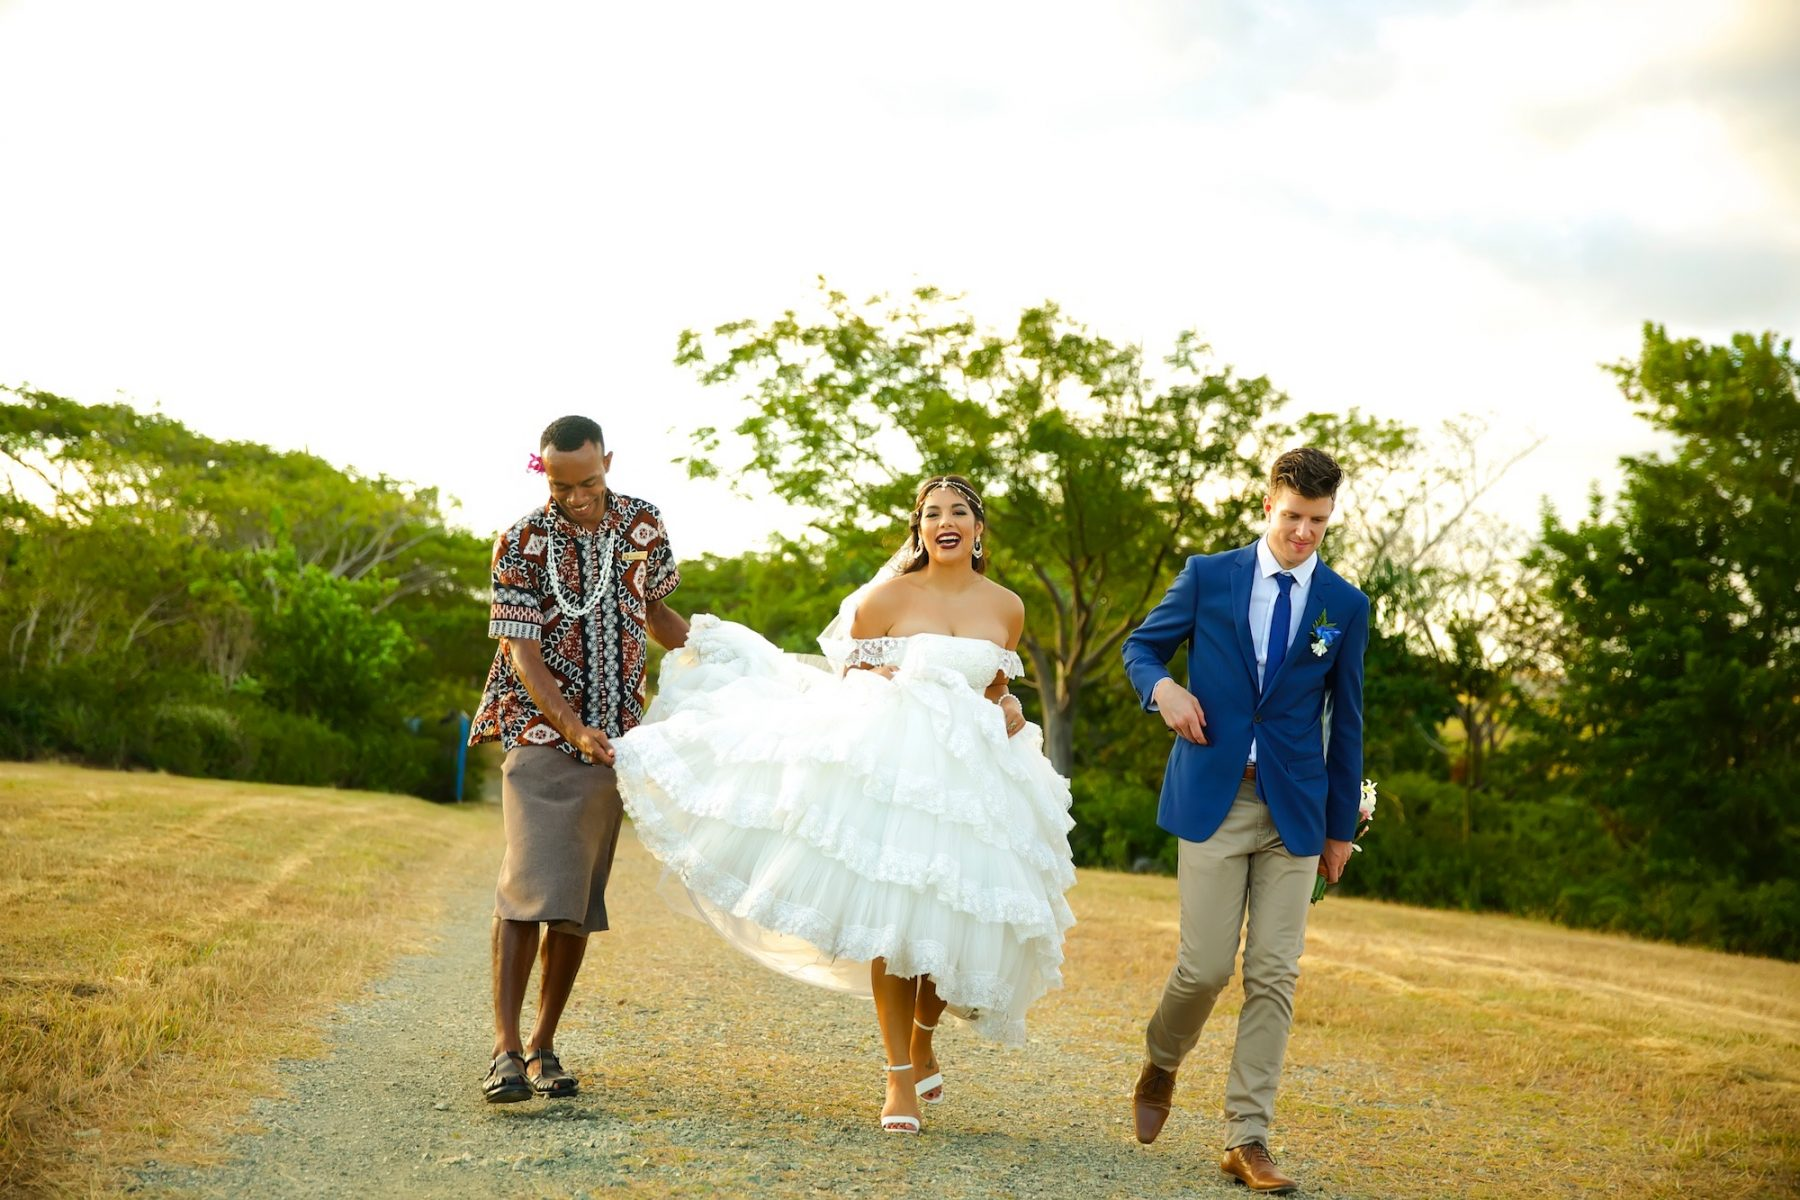 Outrigger Fiji Beach Resort Weddings by Zoomfiji - Header Image